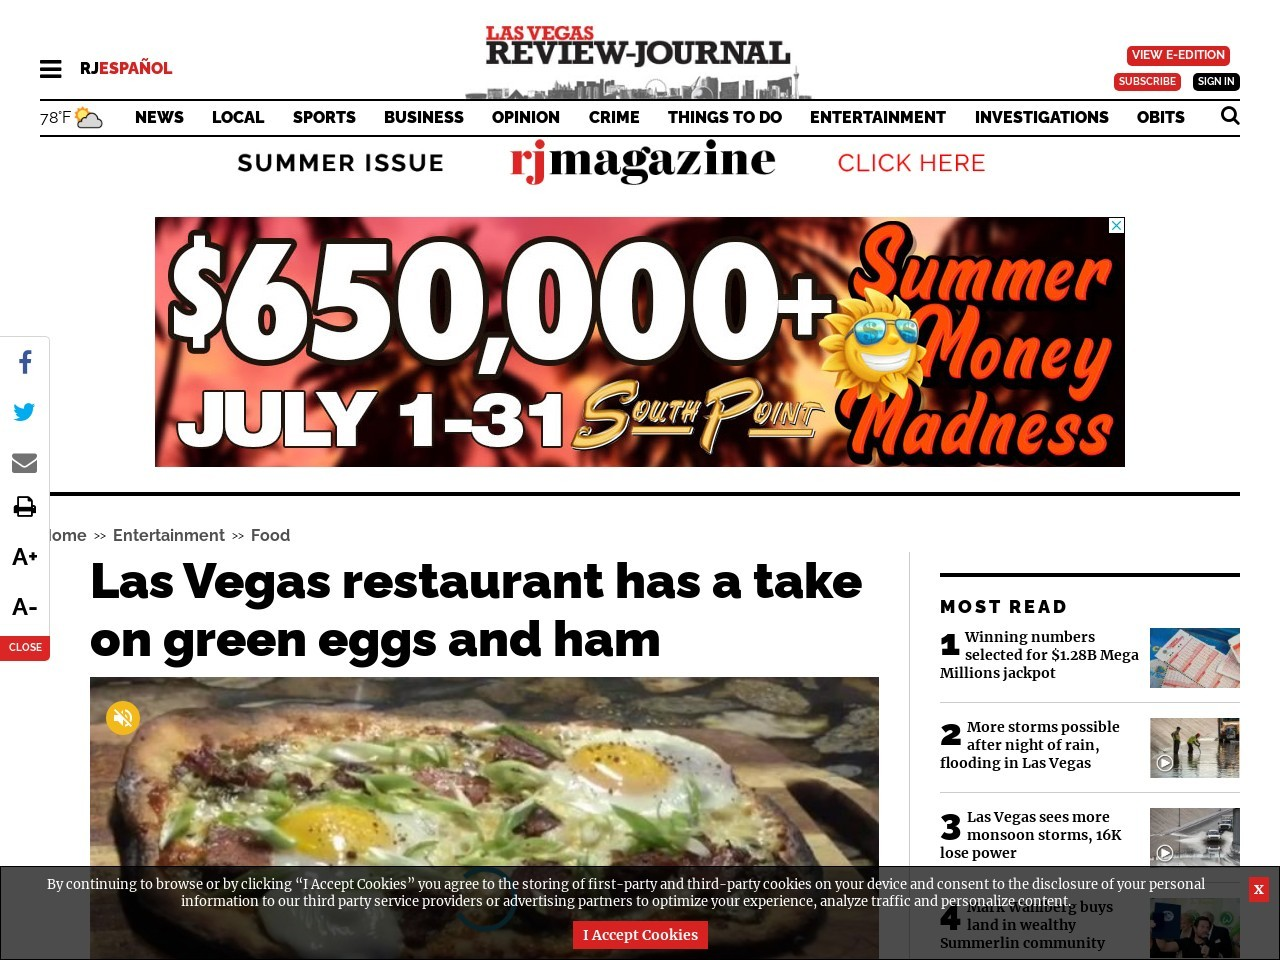 Las Vegas restaurant has a take on green eggs and ham